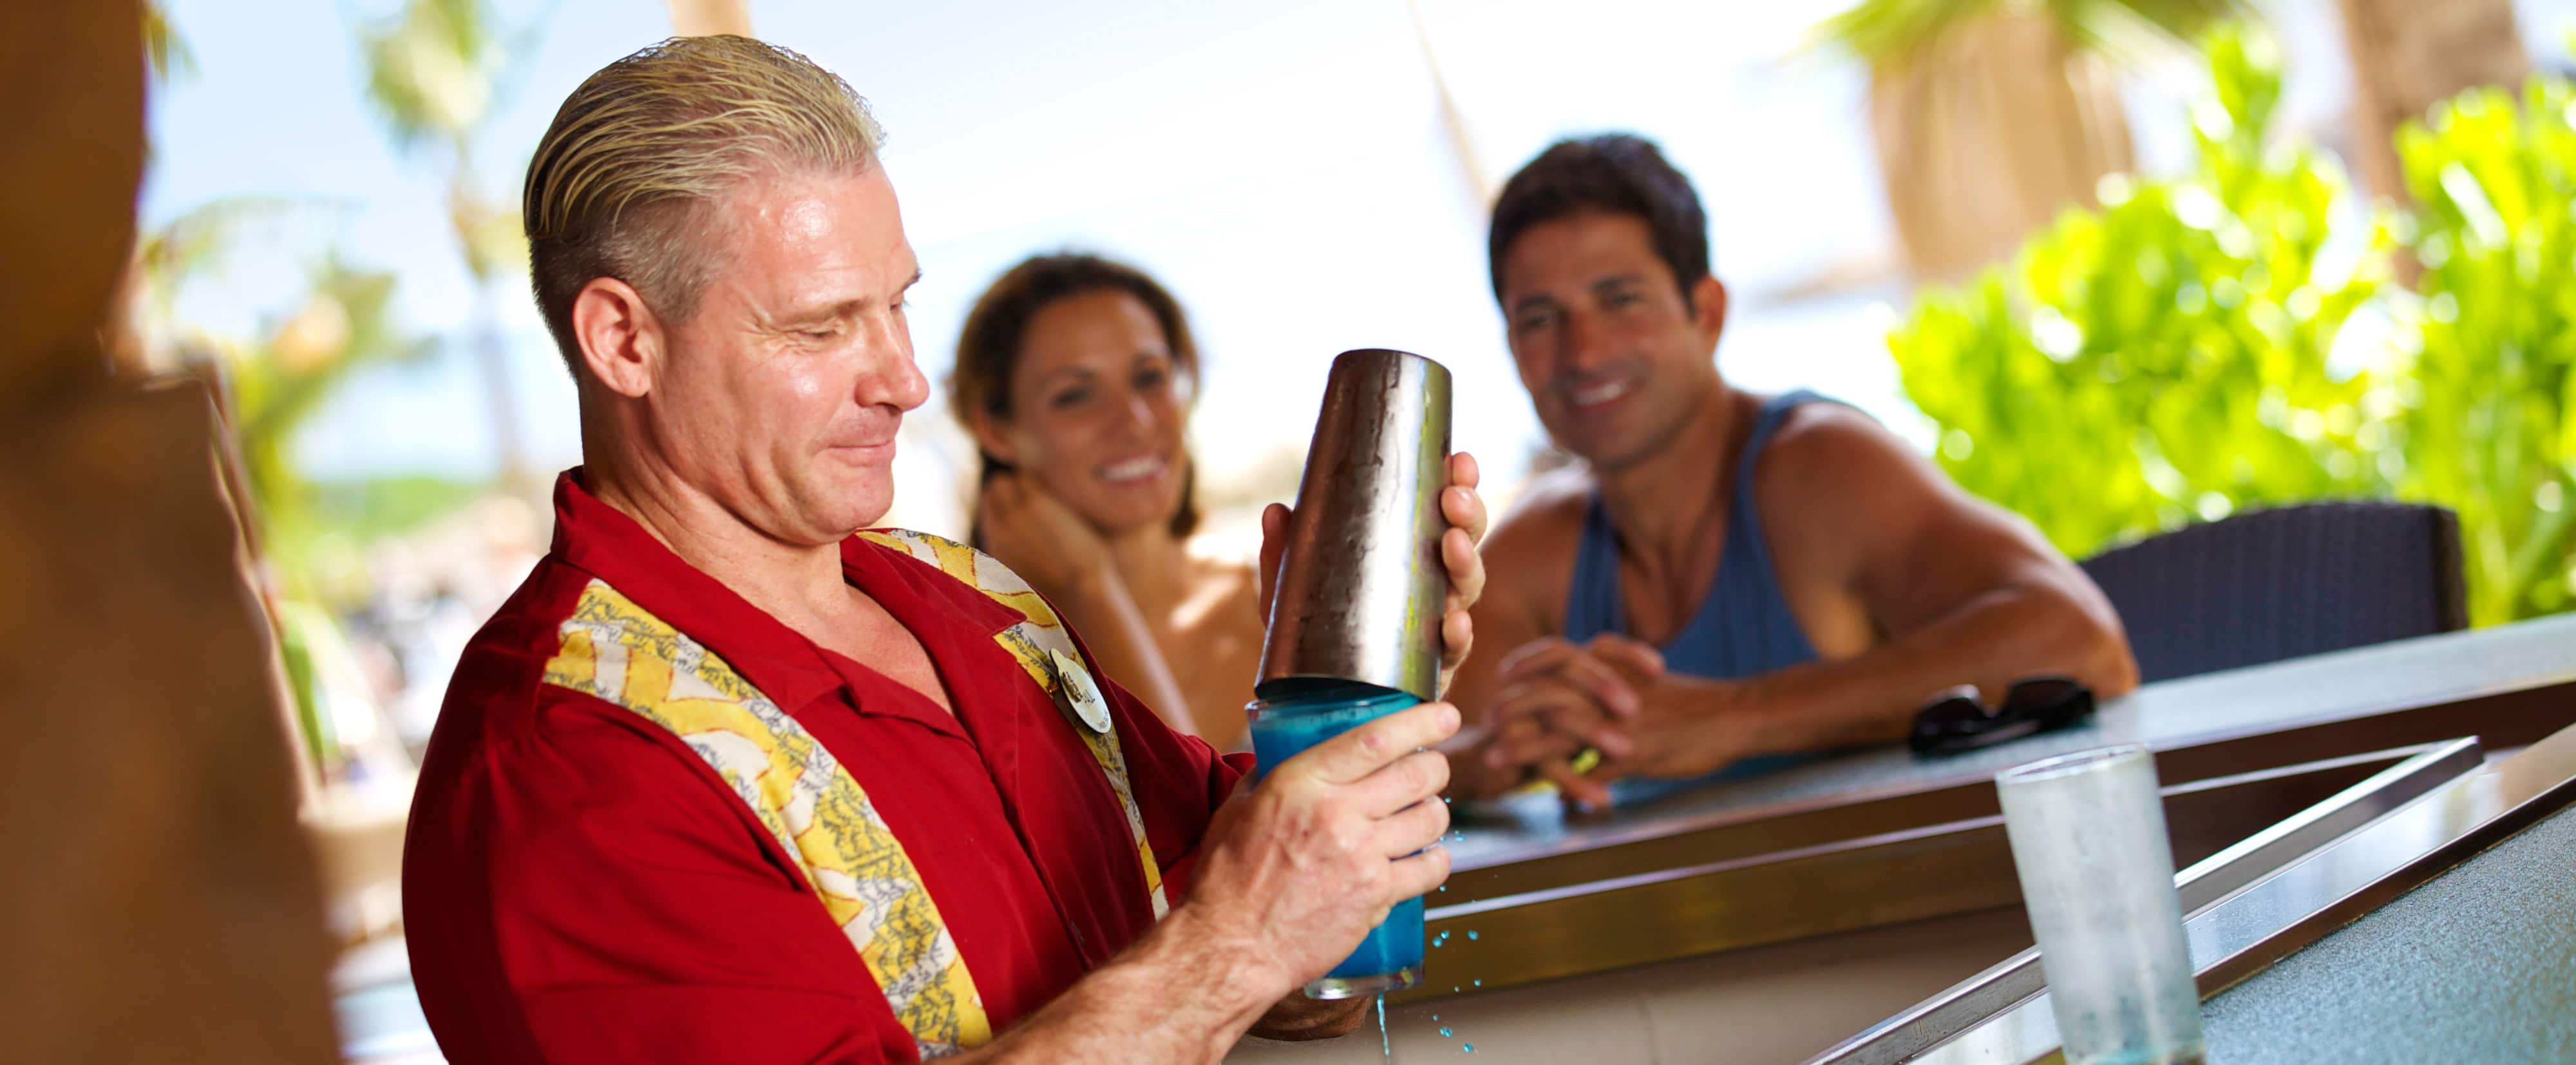 A bartender mixes a blue drink with a cocktail shaker while a smiling couple sitting at the bar watches